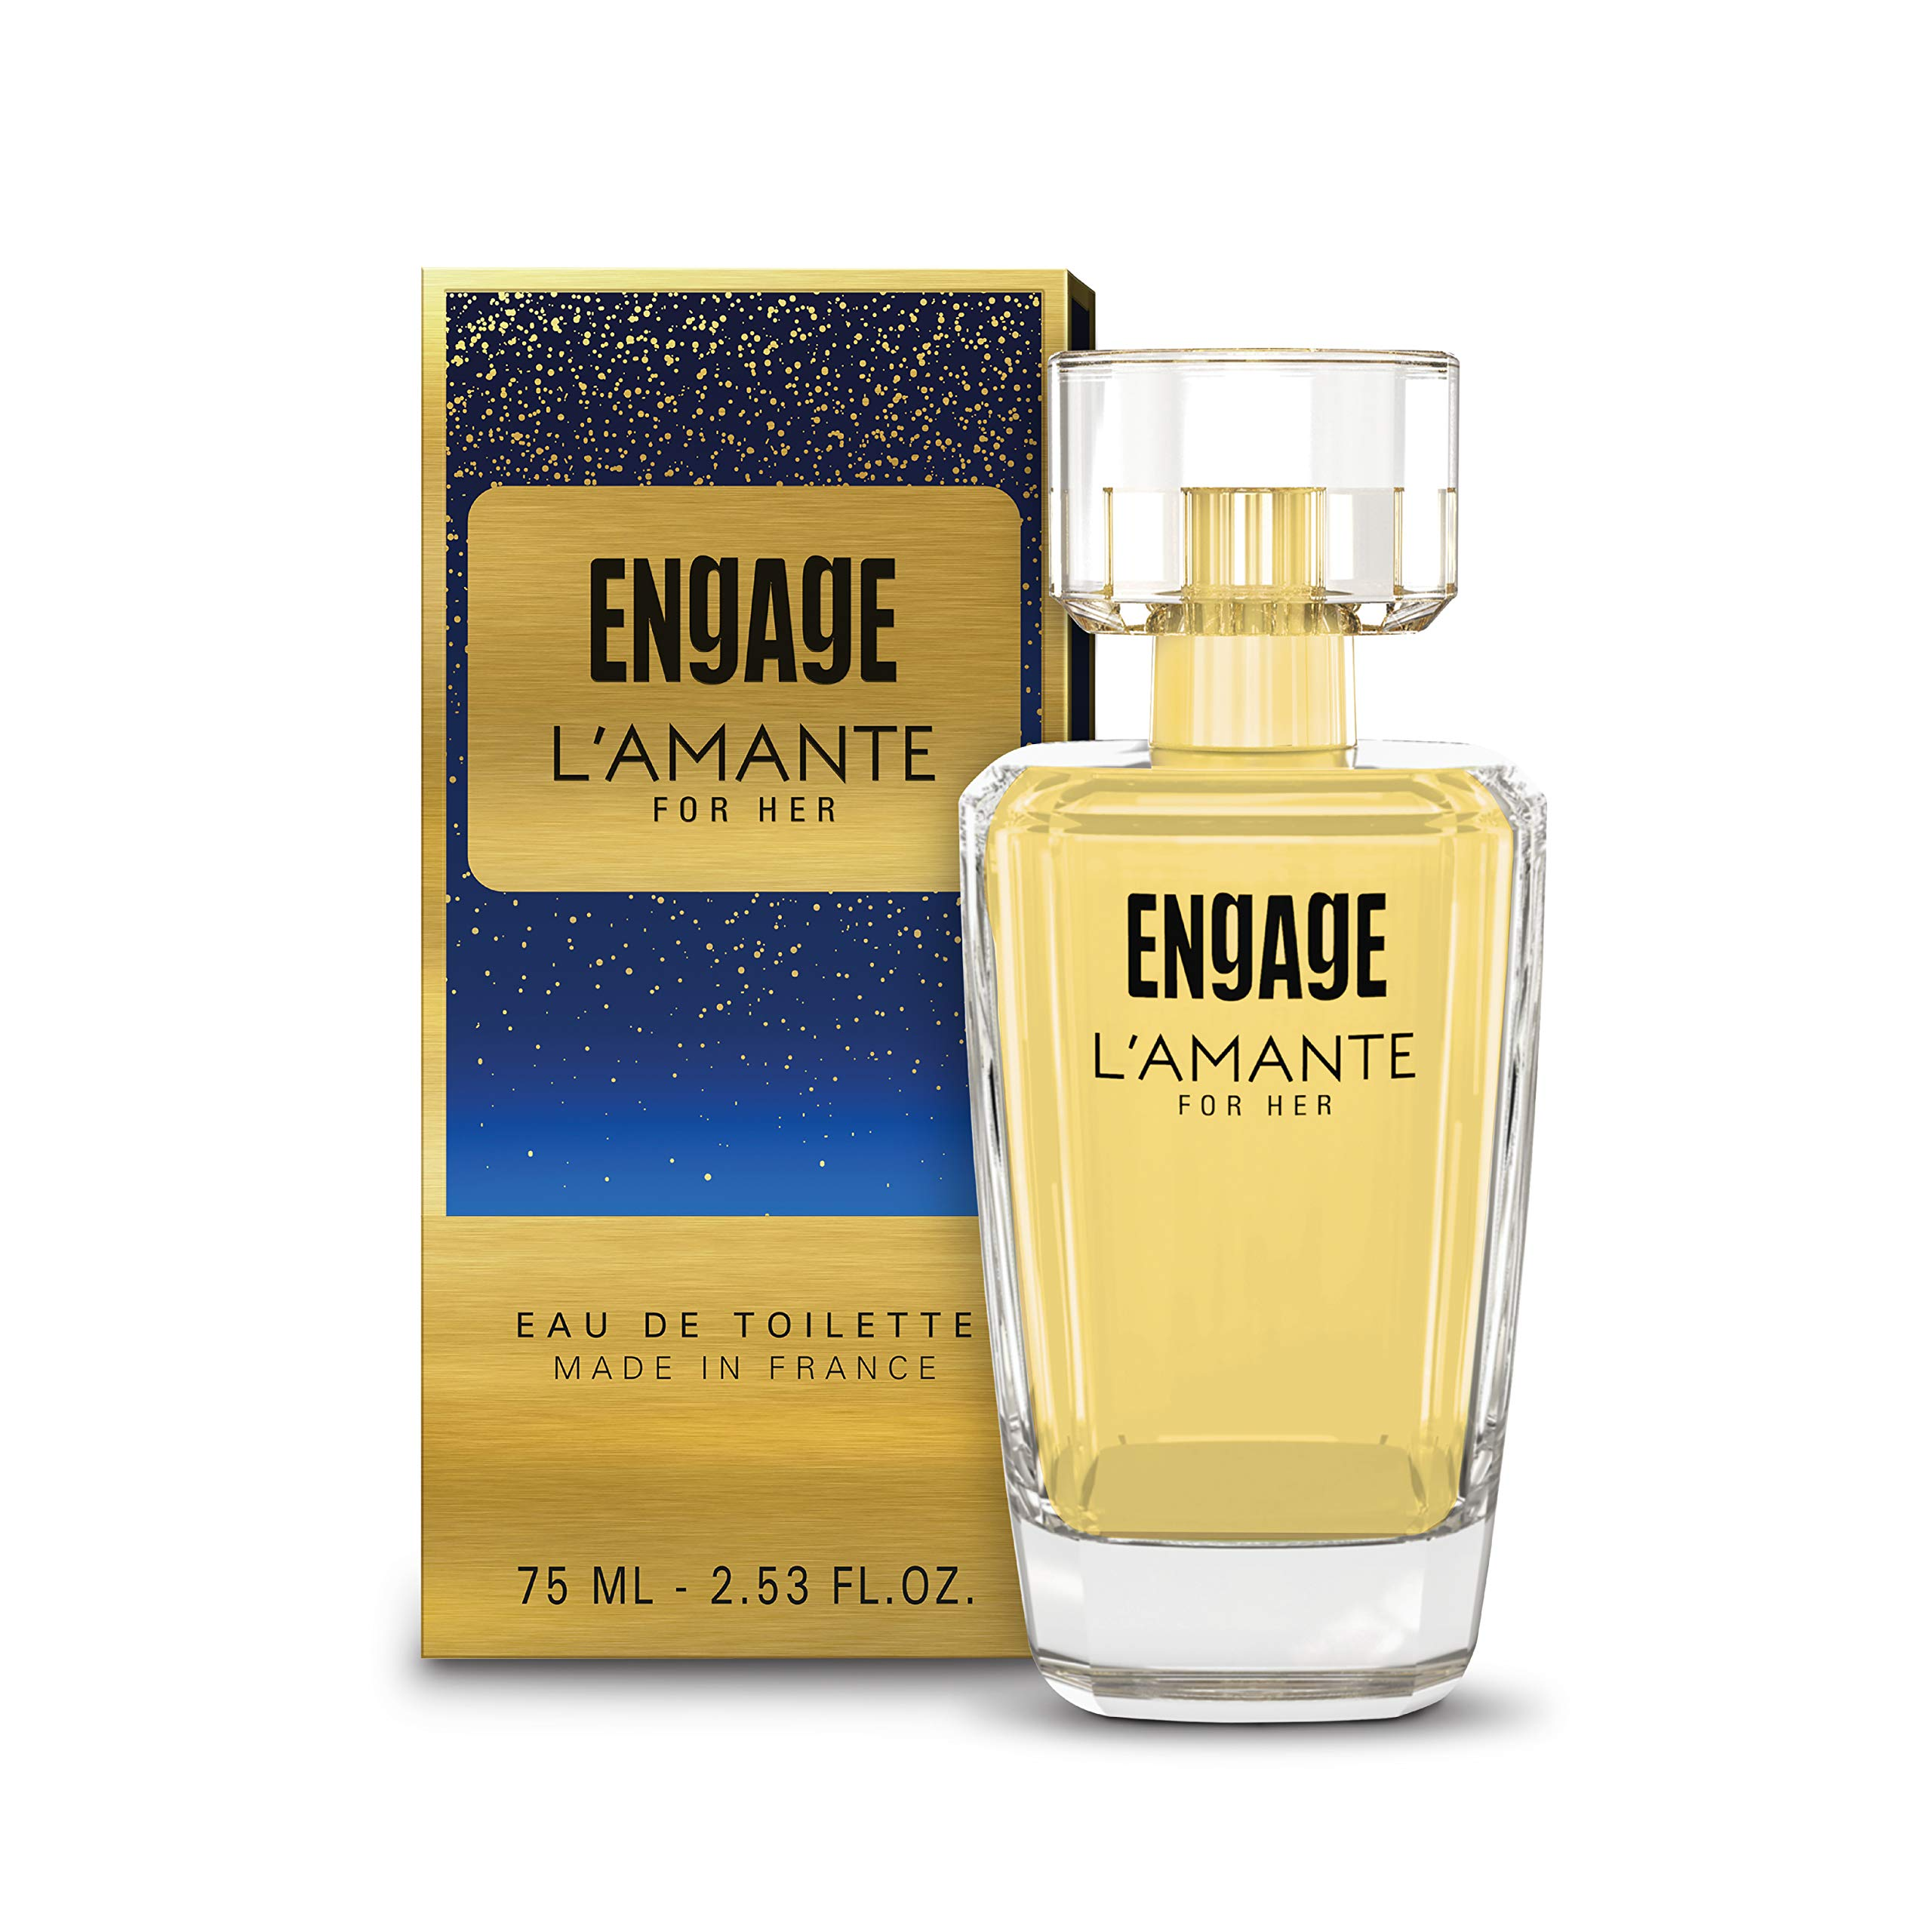 Engage L'amante Eau De Toilette, Perfume for Women, 75ml product image